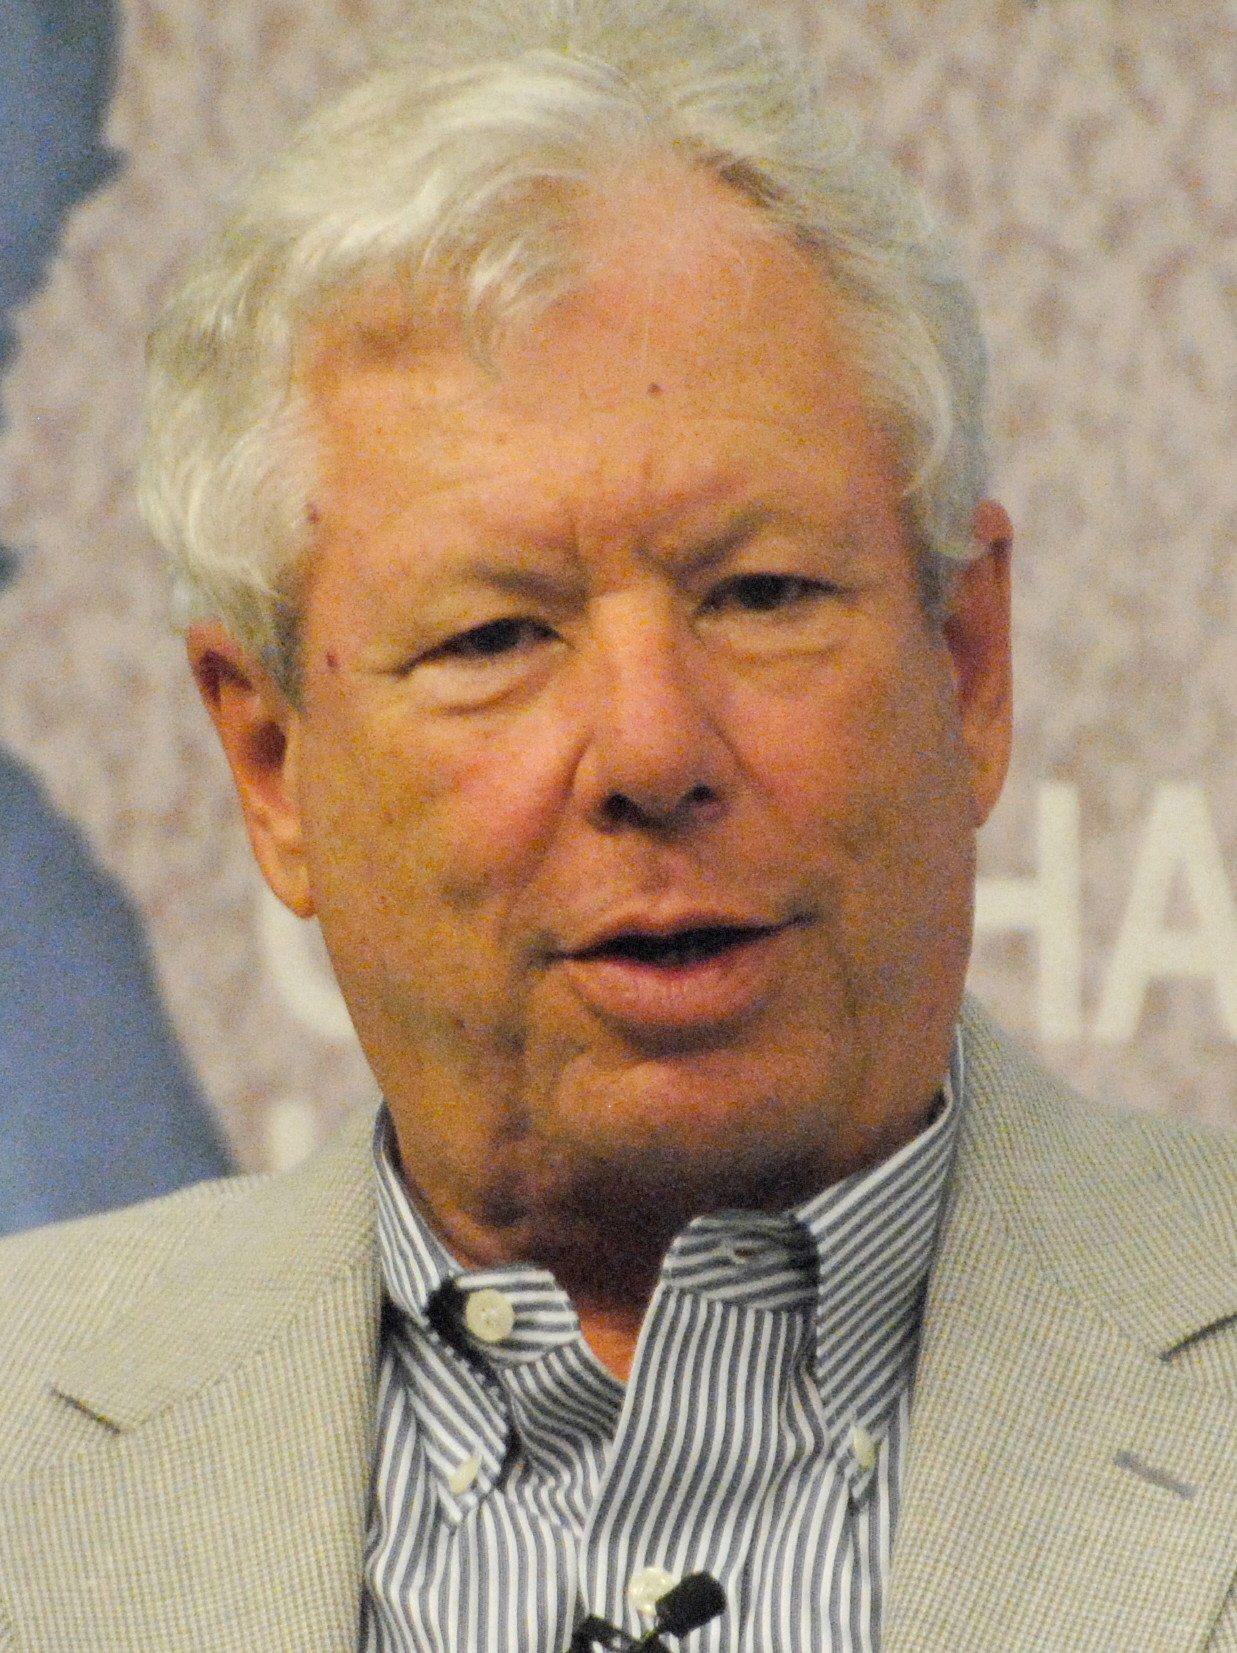 Richard H. Thaler. Picture/Credit: By Chatham House, CC BY 2.0